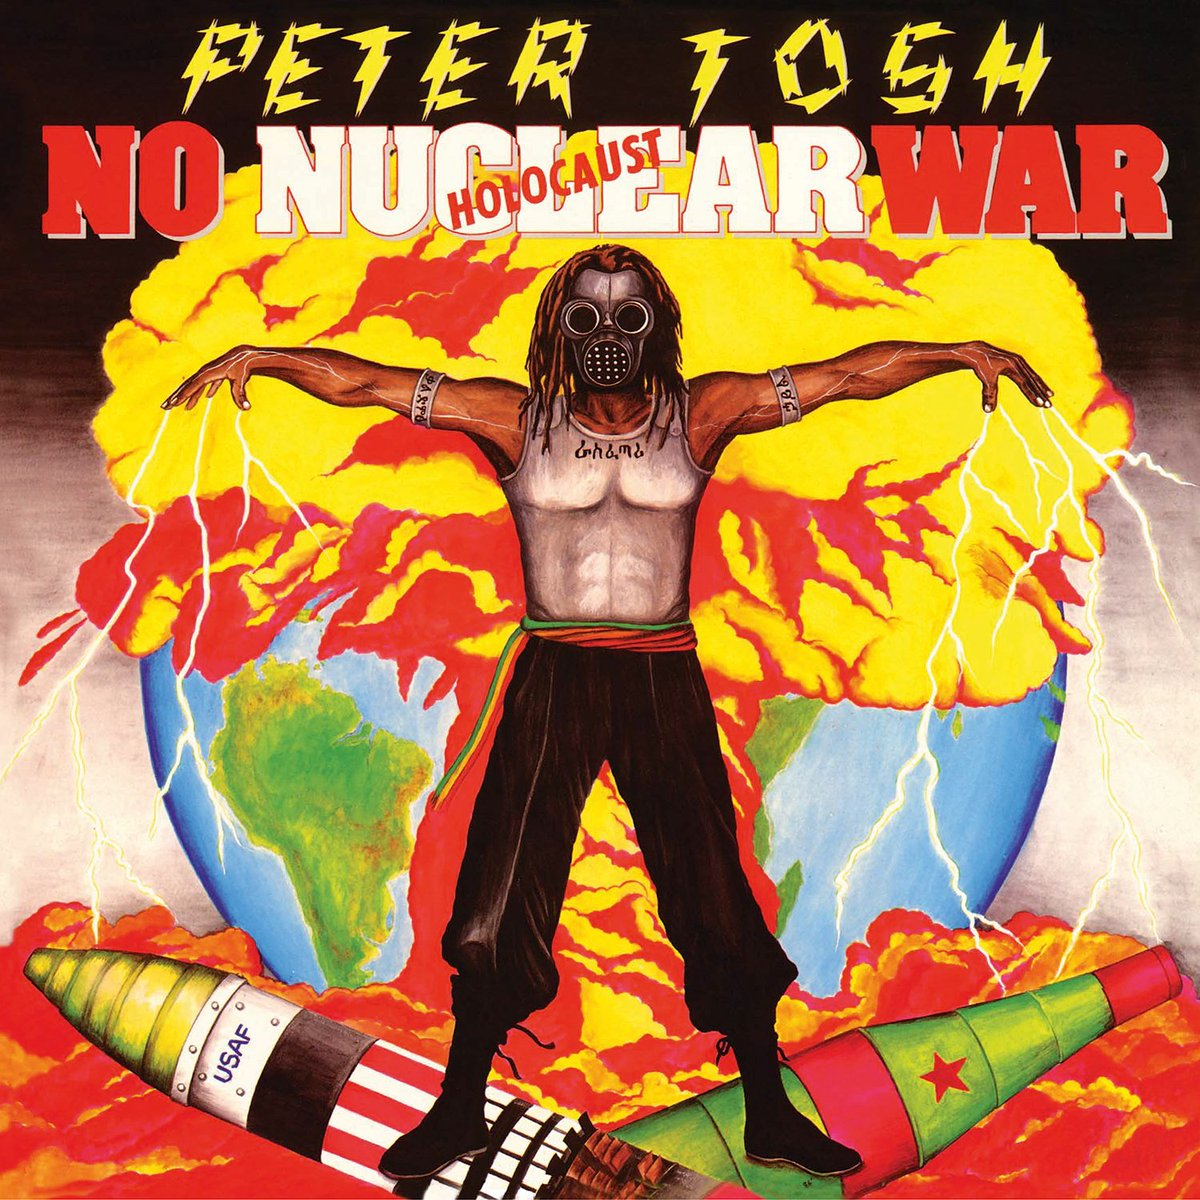 Album cover of the week: Peter Tosh - No Nuclear War  The cover of this Peter Tosh' classic is illustrated by Jamaican graphic artist Neville Garrick. He is best known for creating the art work for many Bob Marley album covers. The message is crystal clear! https://t.co/34sSek96iQ